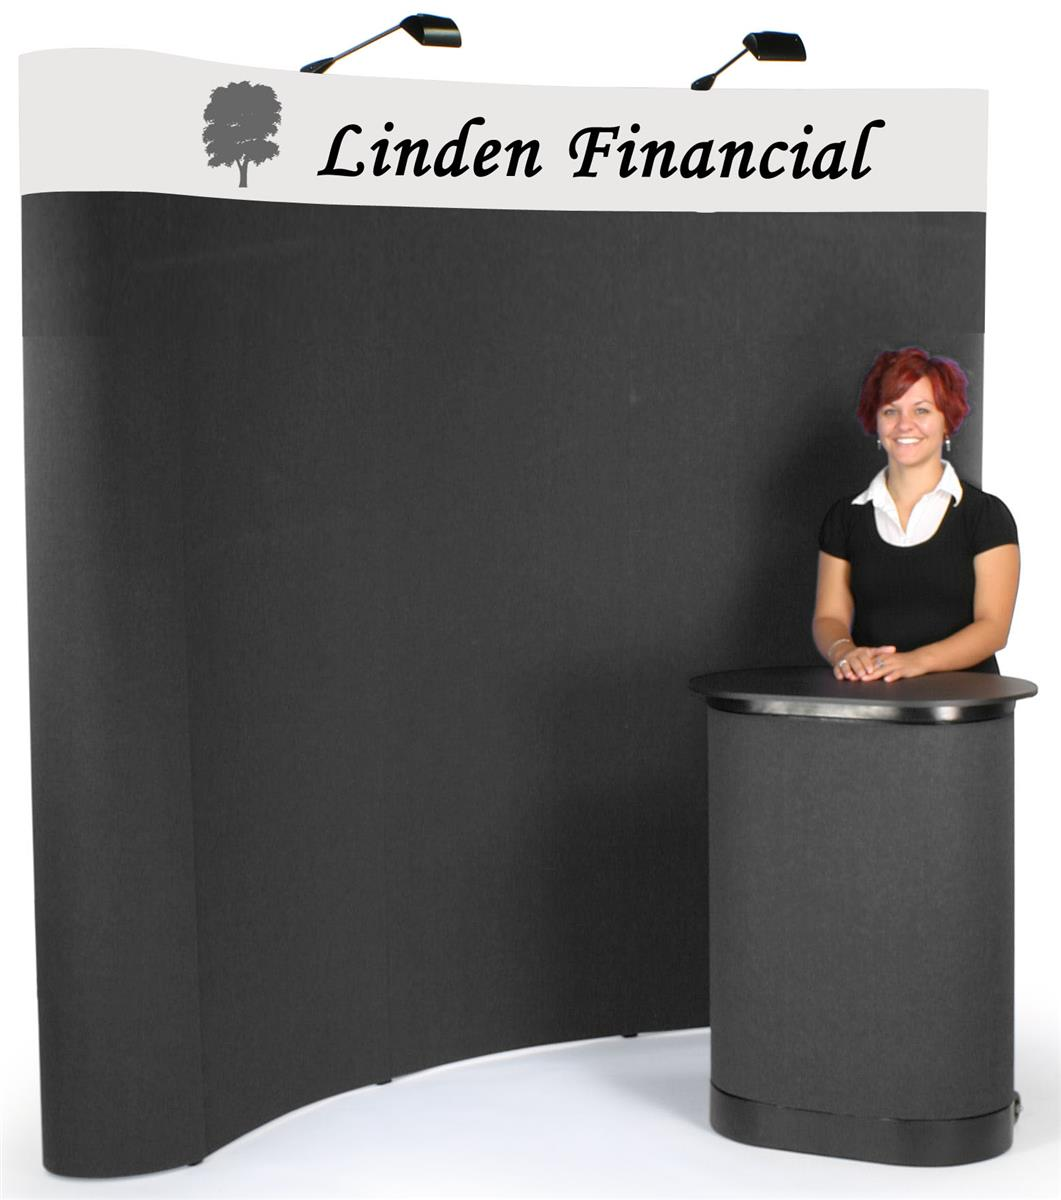 Exhibition Booth Header : Exhibition booth curved pop up display w custom header